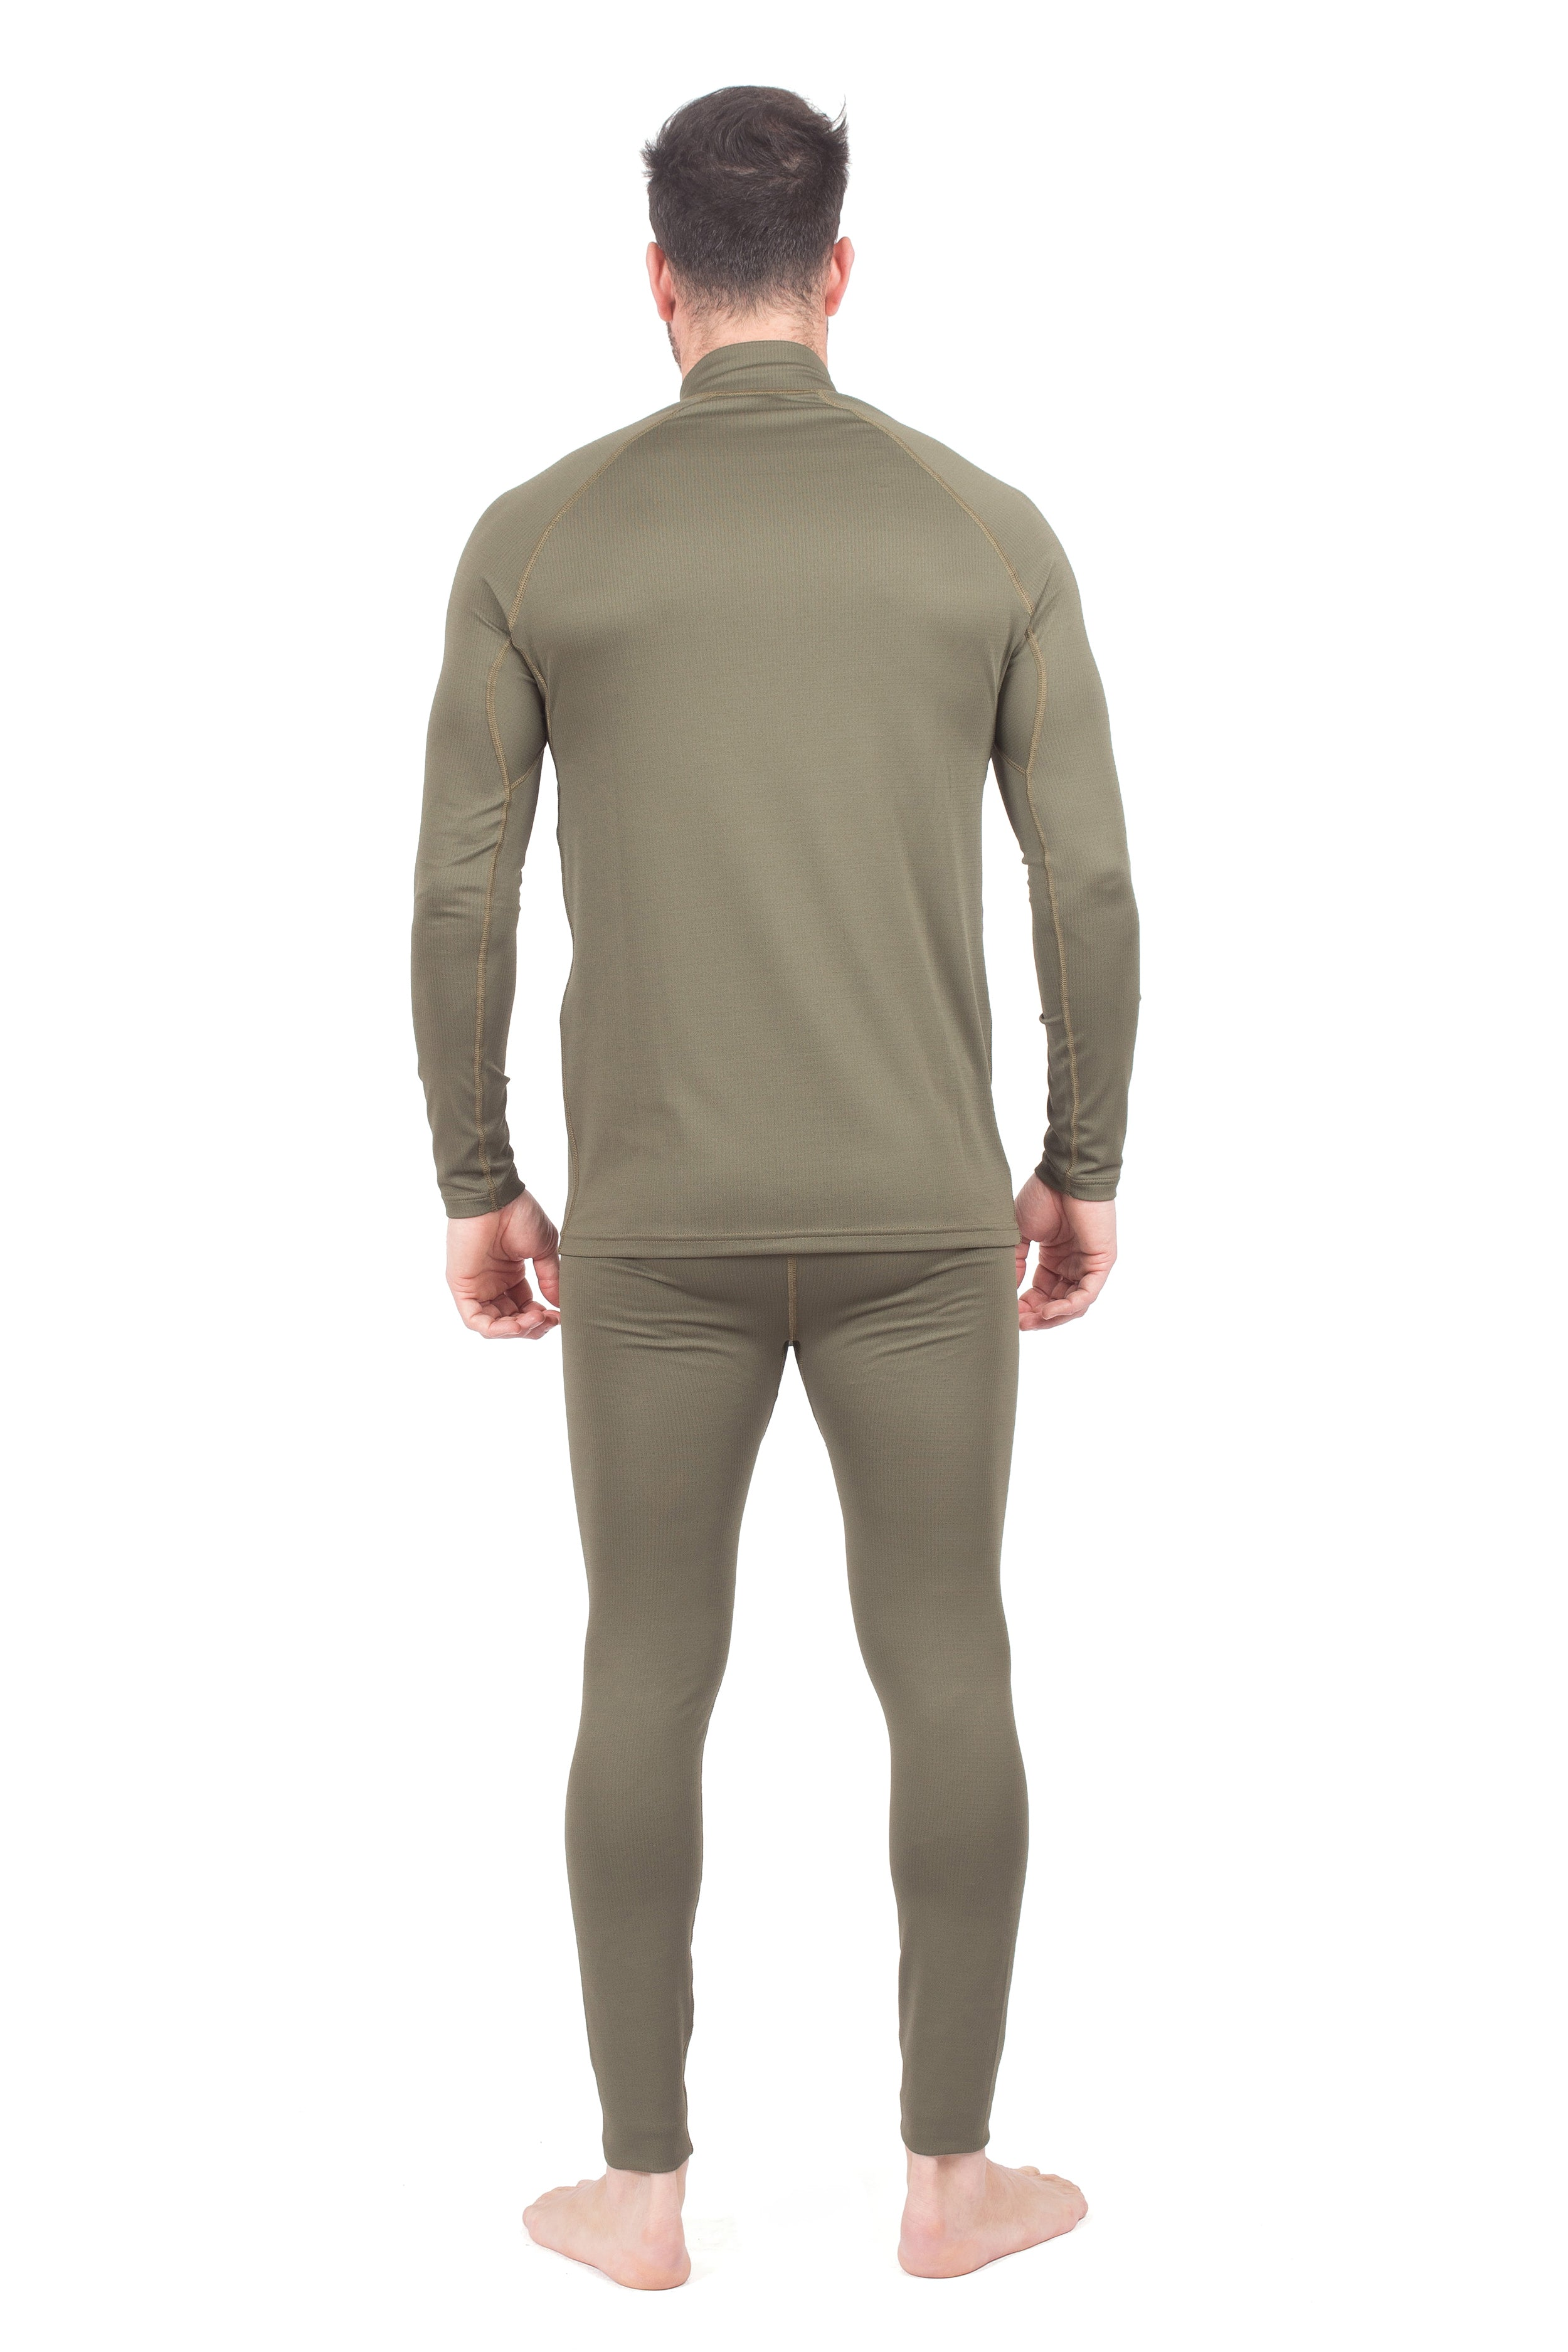 ARMY FULL THERMAL COMBAT SUIT